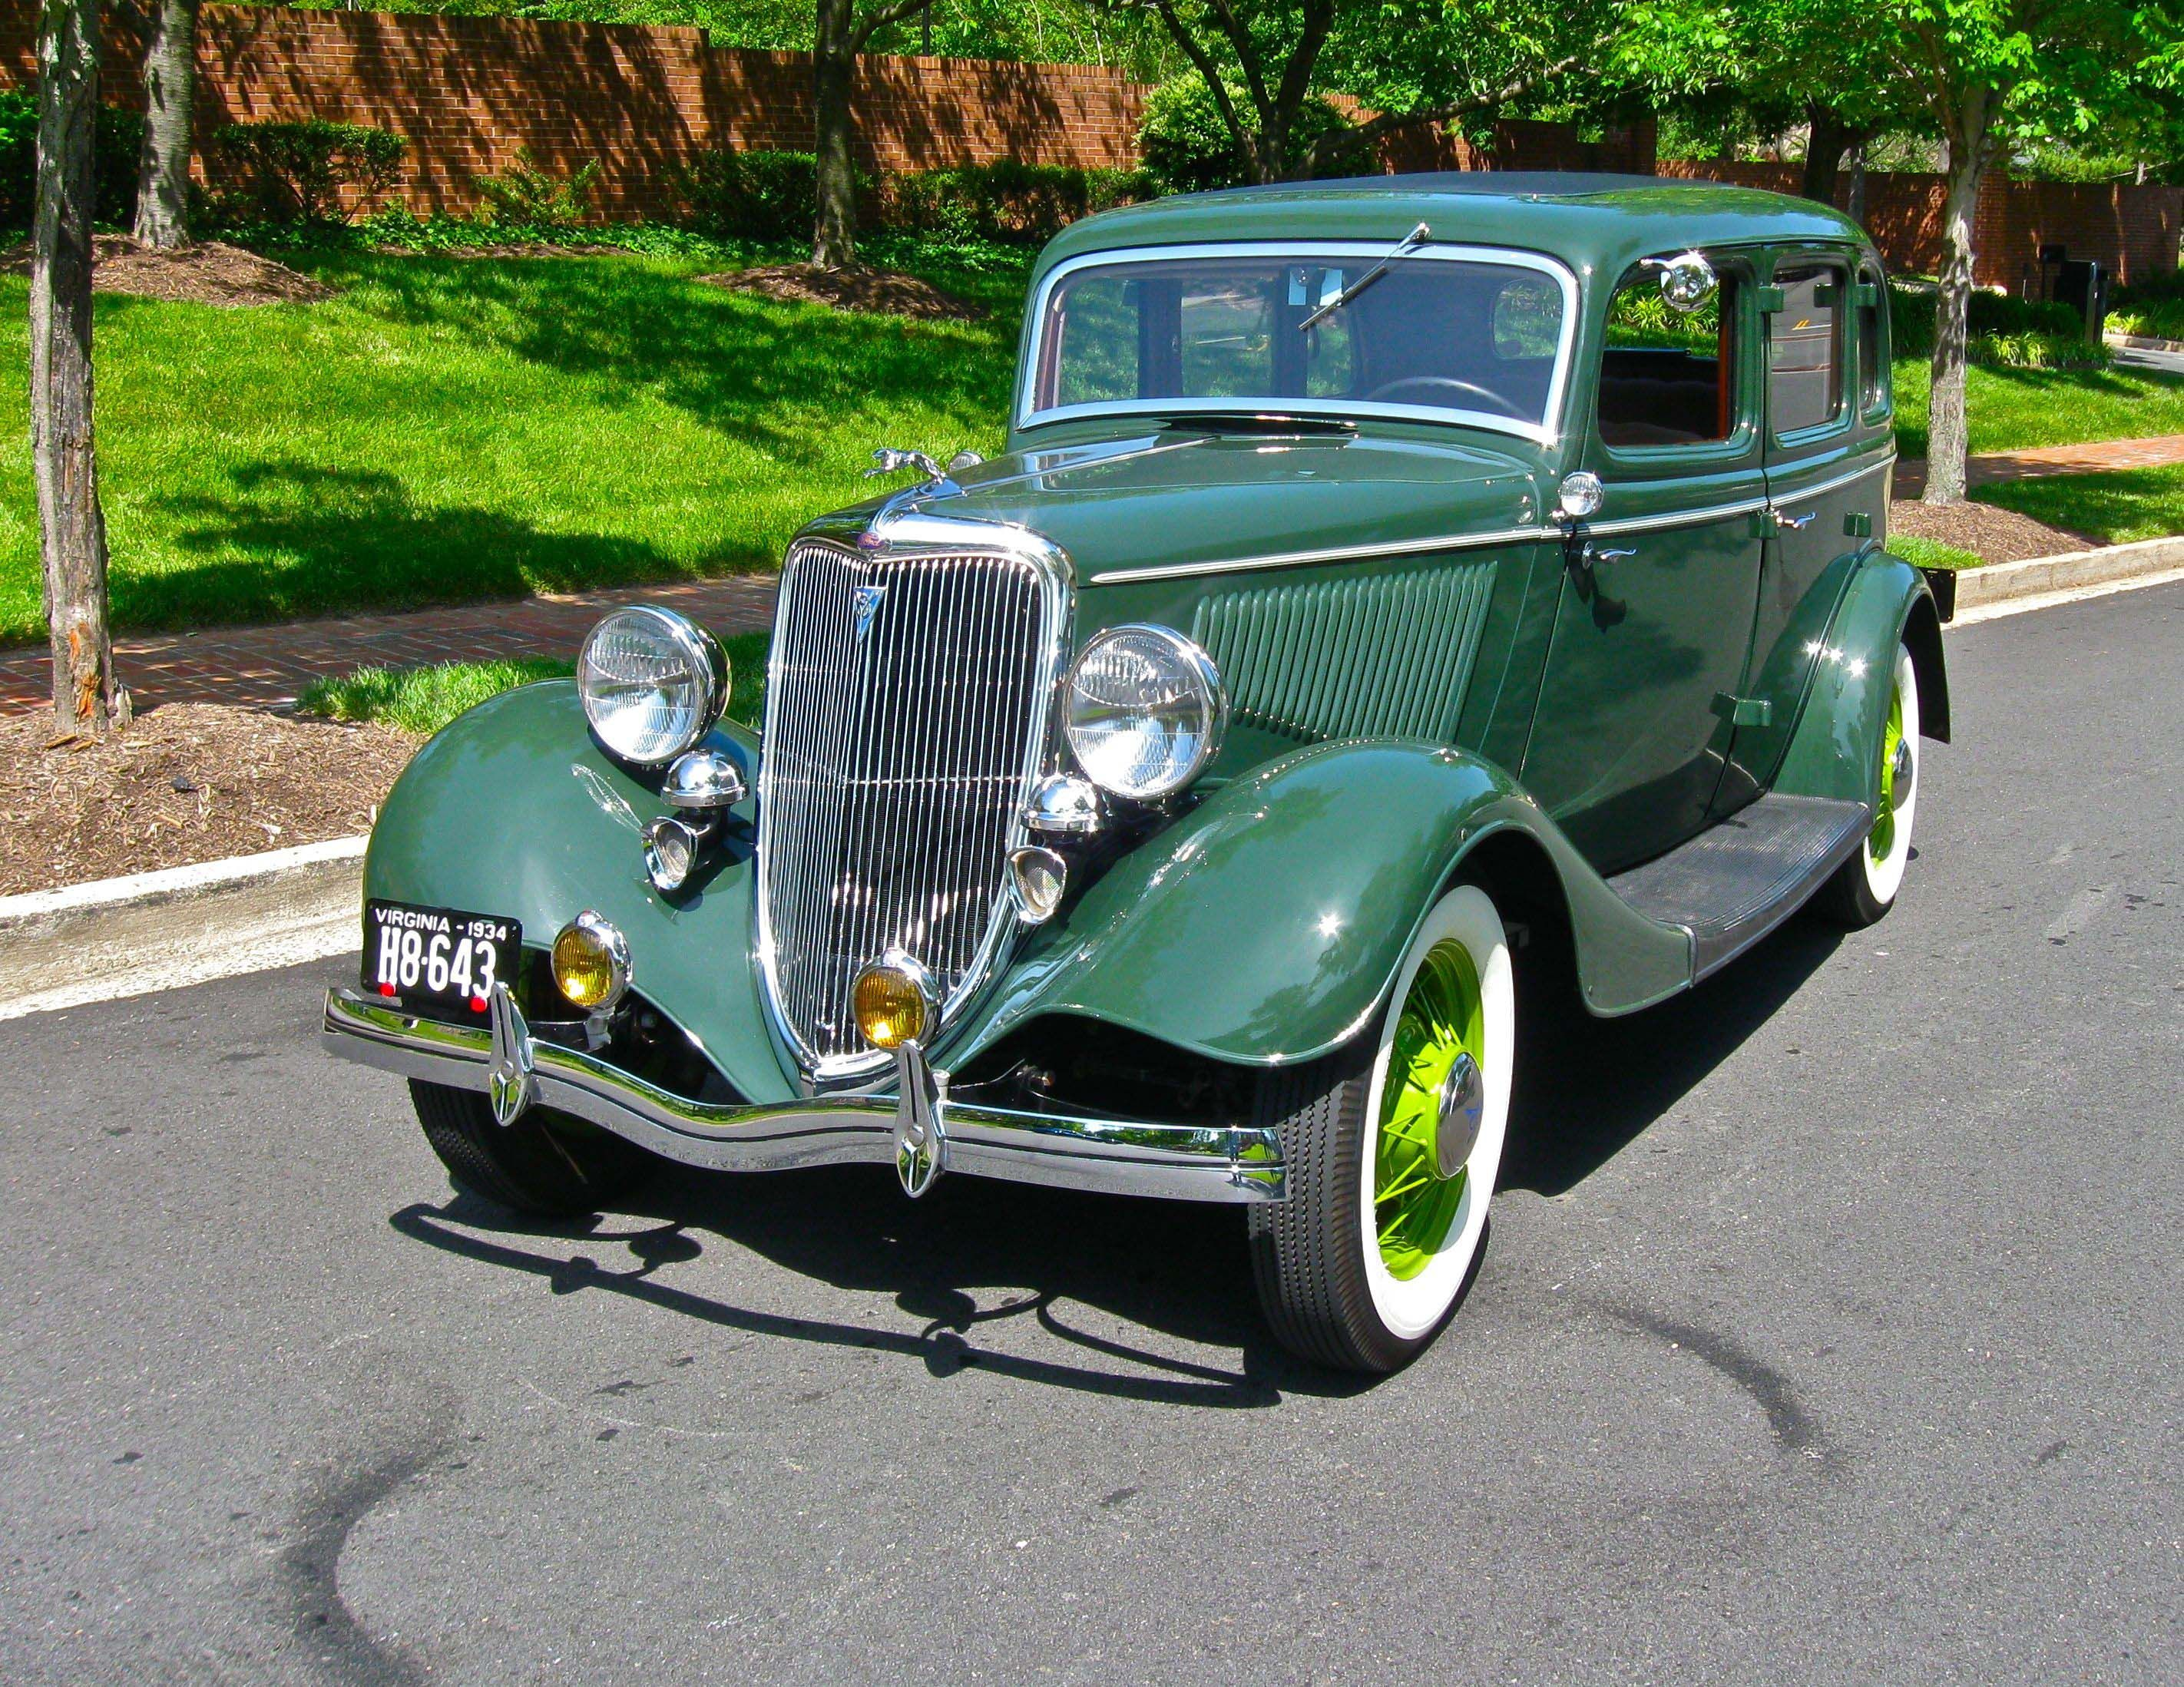 1934 Ford 4 Door Sedan For Sale In 1934 Ford Truck For Sale Ford Trucks For Sale Ford Trucks For Sale